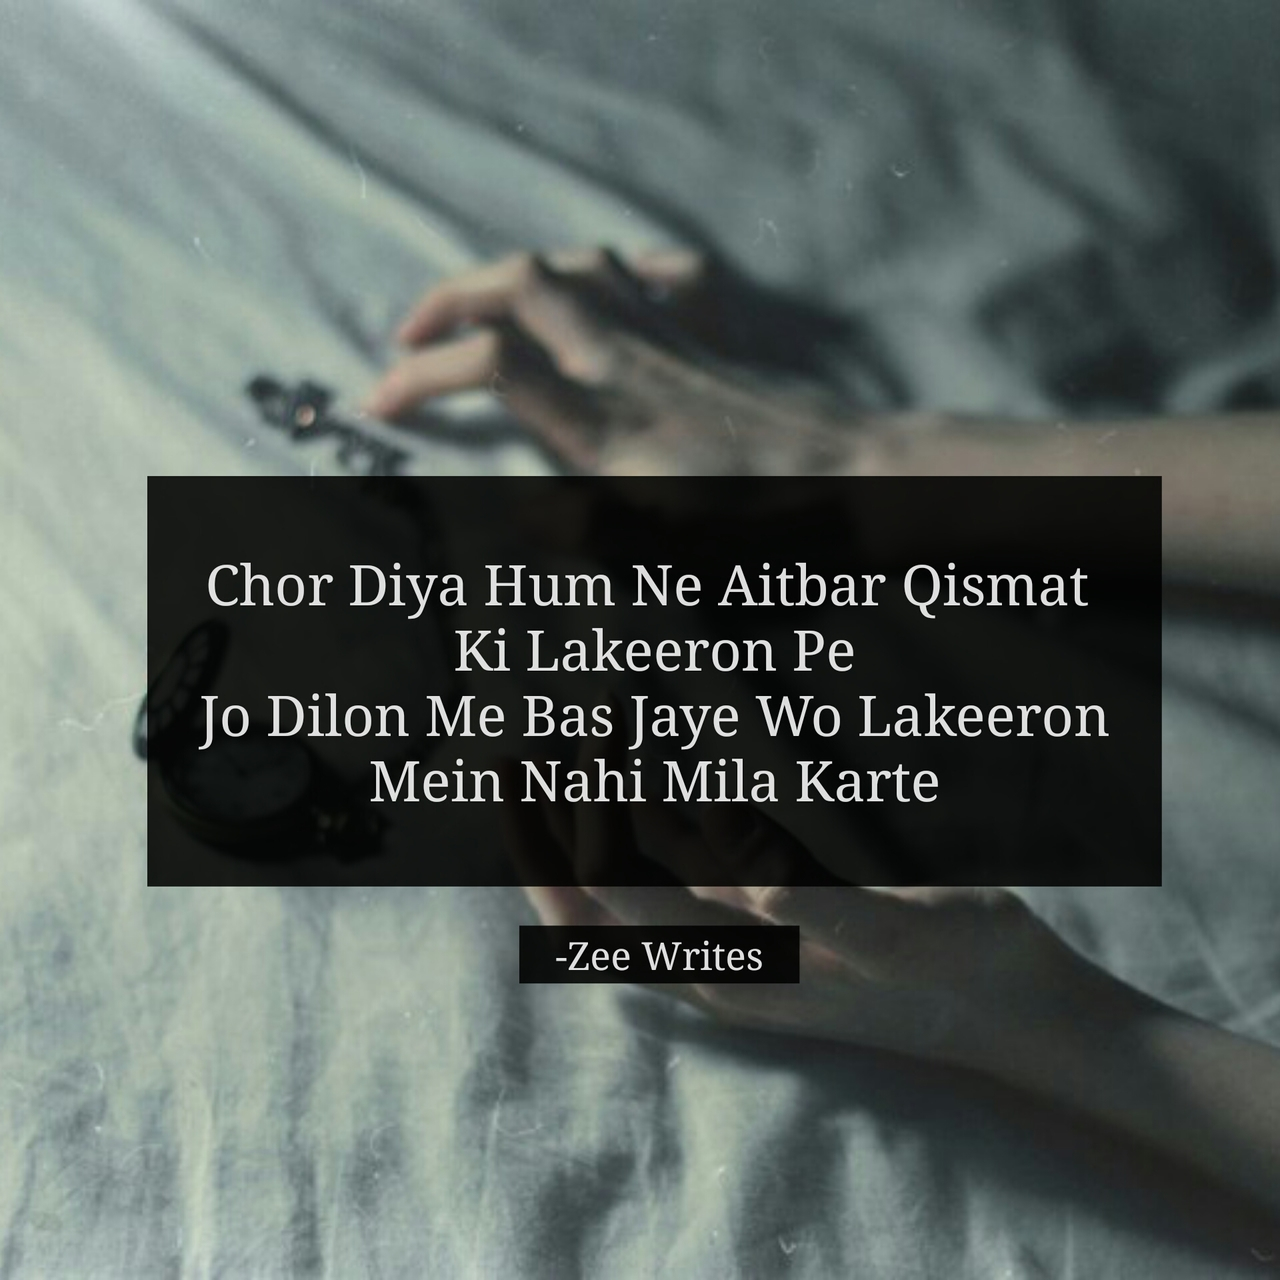 652 images about sad urdu poetry on We Heart It | See more about